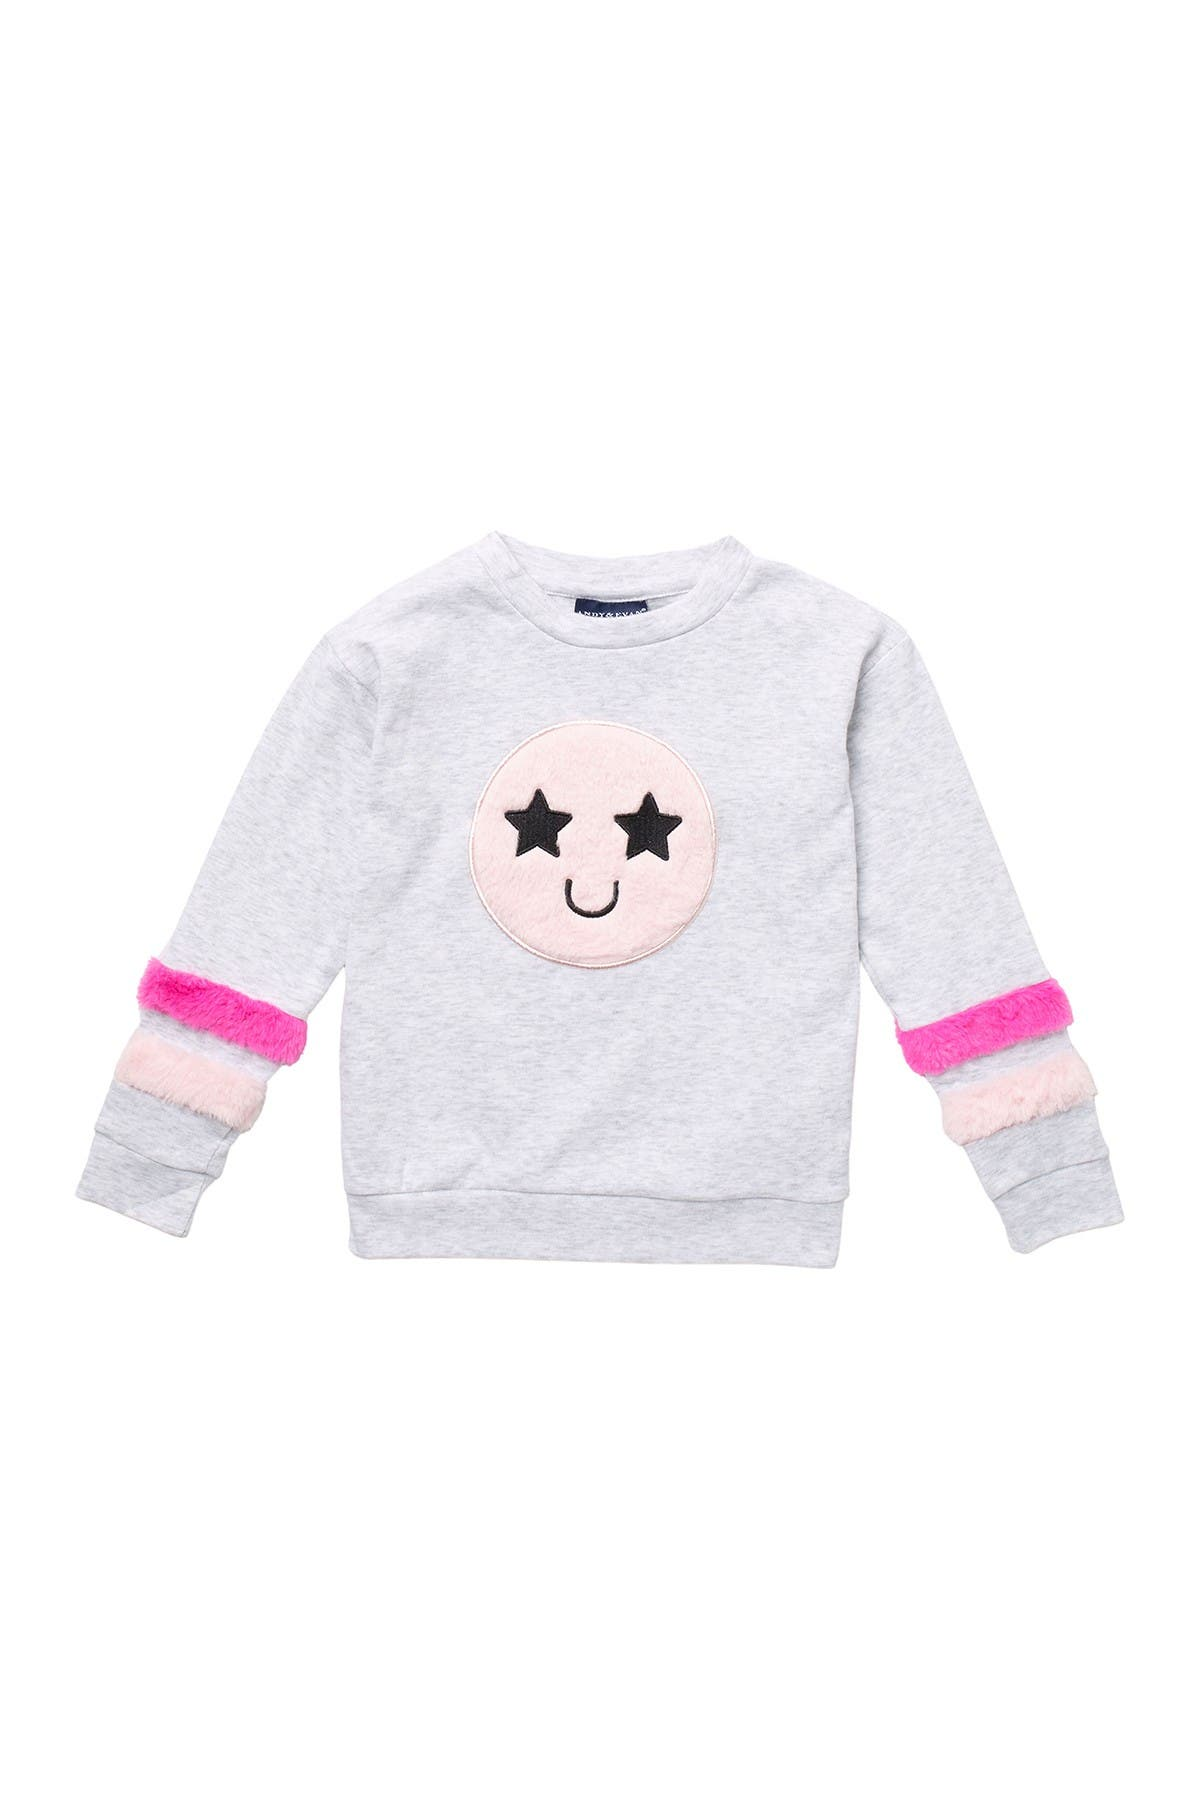 Image of Andy & Evan Long Sleeve Smiley Top